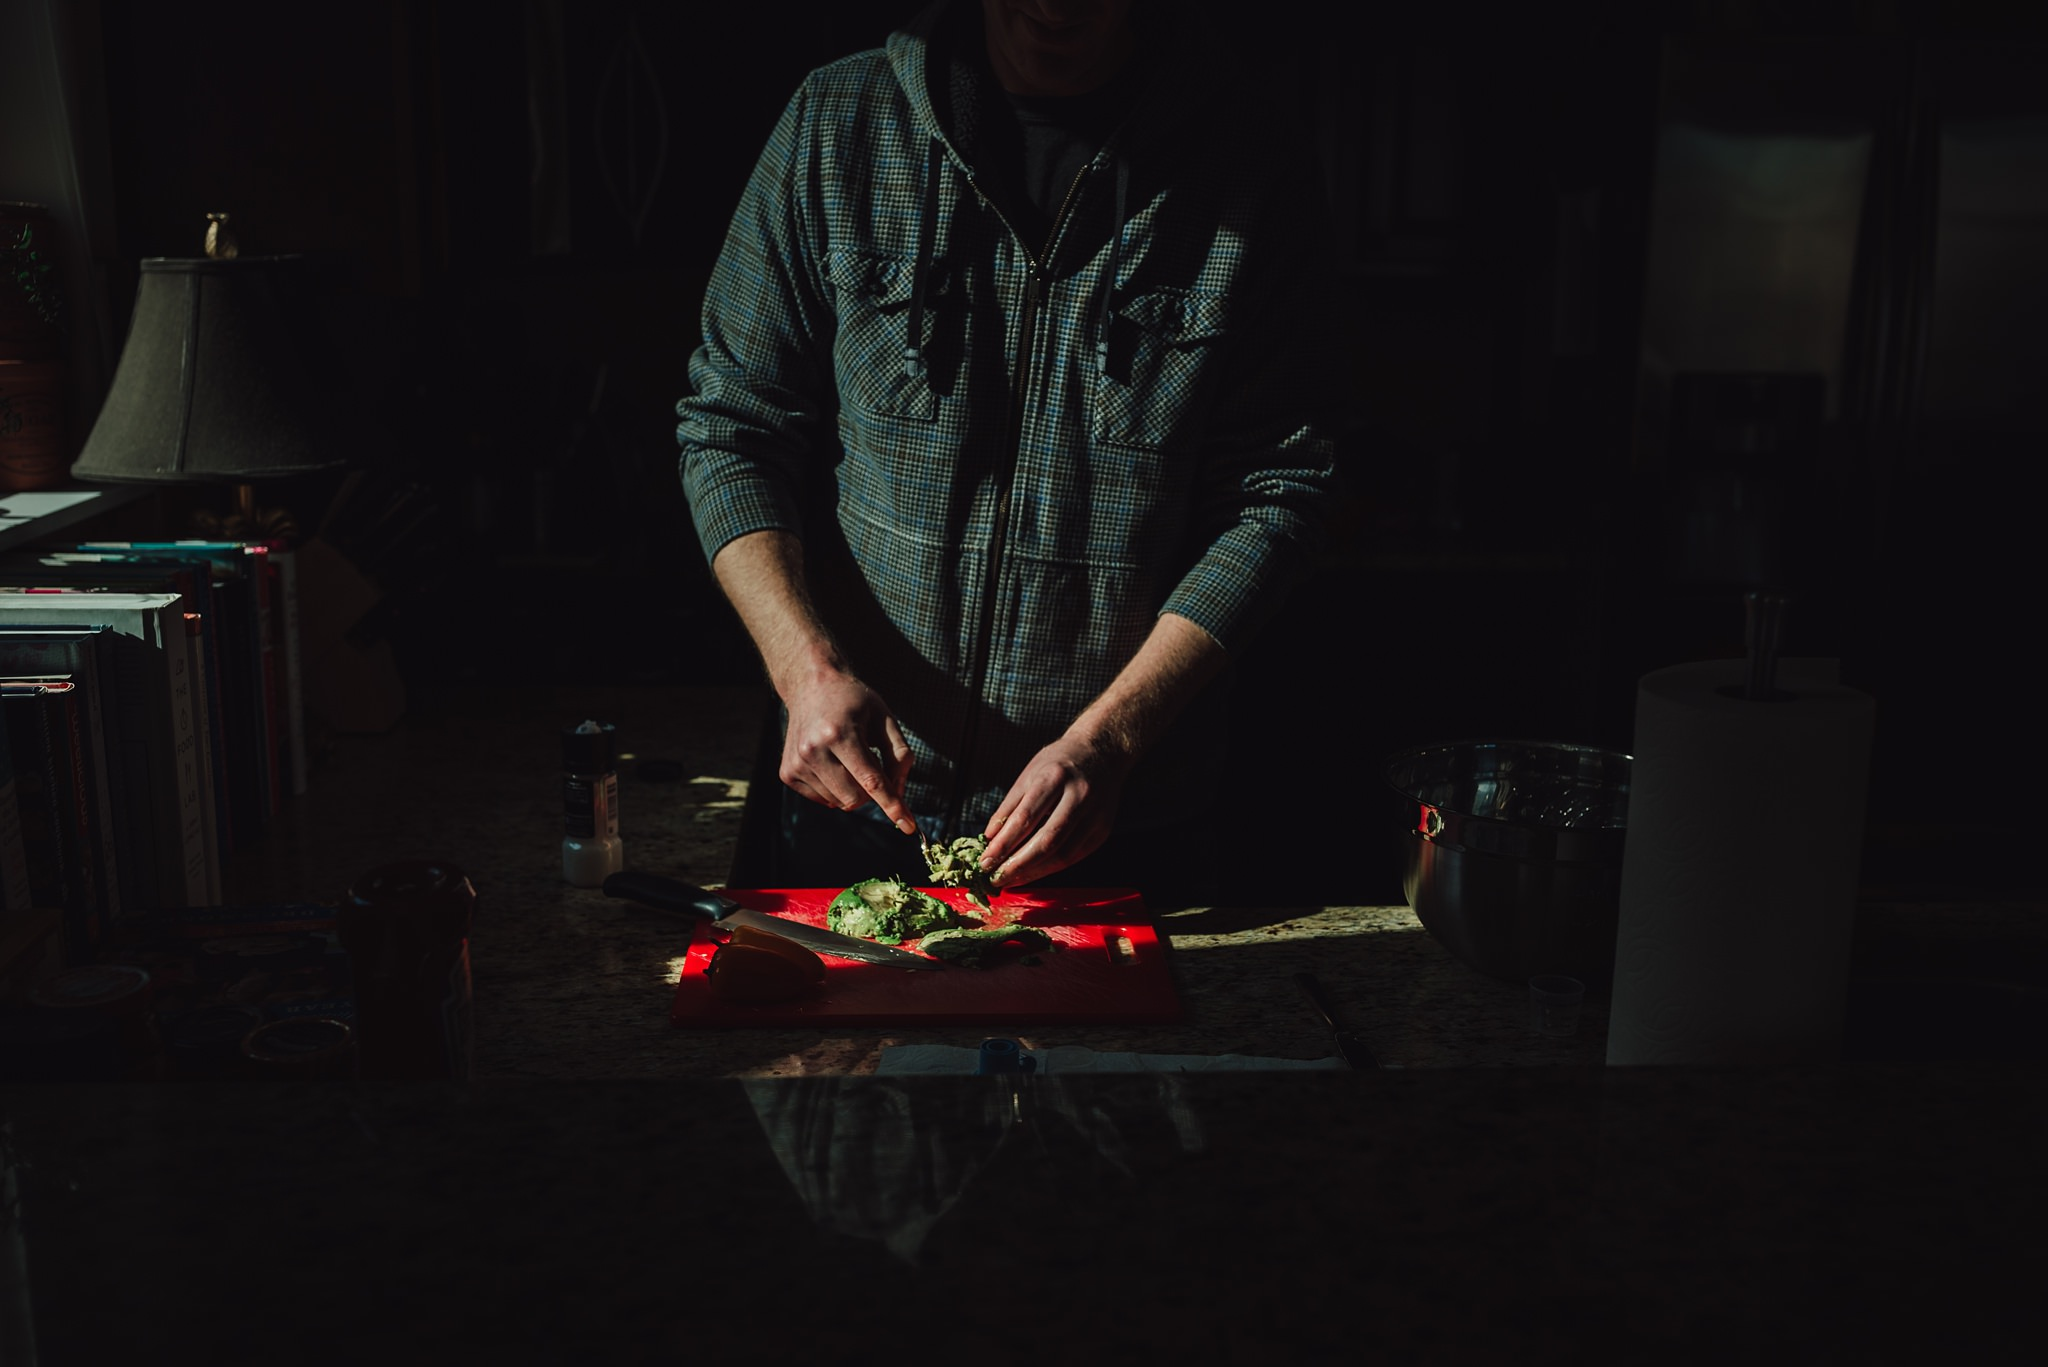 man cuts vegetables in kitchen while standing in harsh light | Whidbey Island family photographer